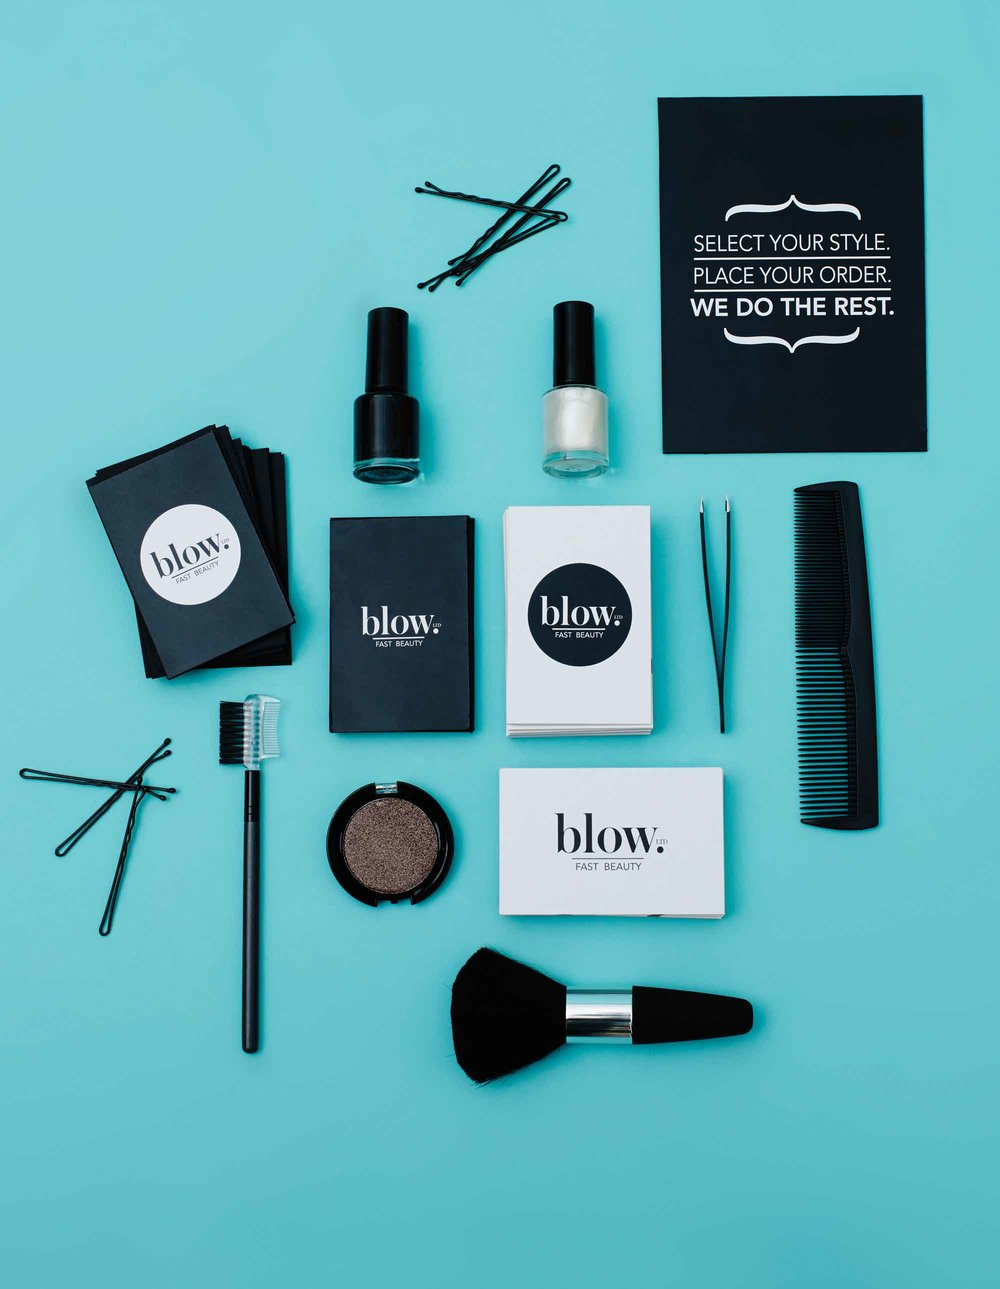 Blow ltd. is an edited, innovative beauty concept